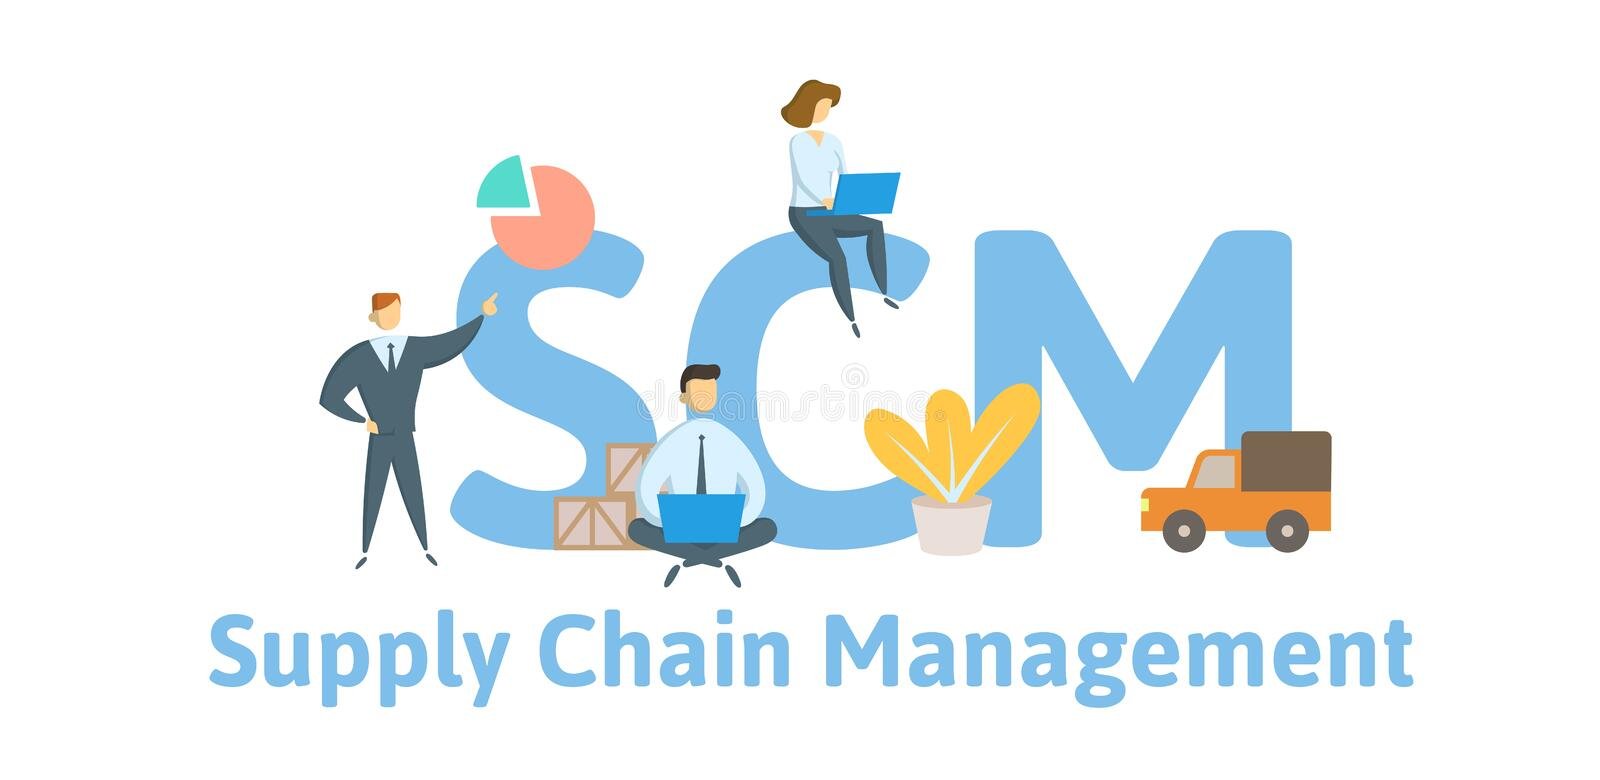 SCM - Supply Chain Management. Concept with keywords, letters, and icons. Flat vector illustration. Isolated on white royalty free illustration